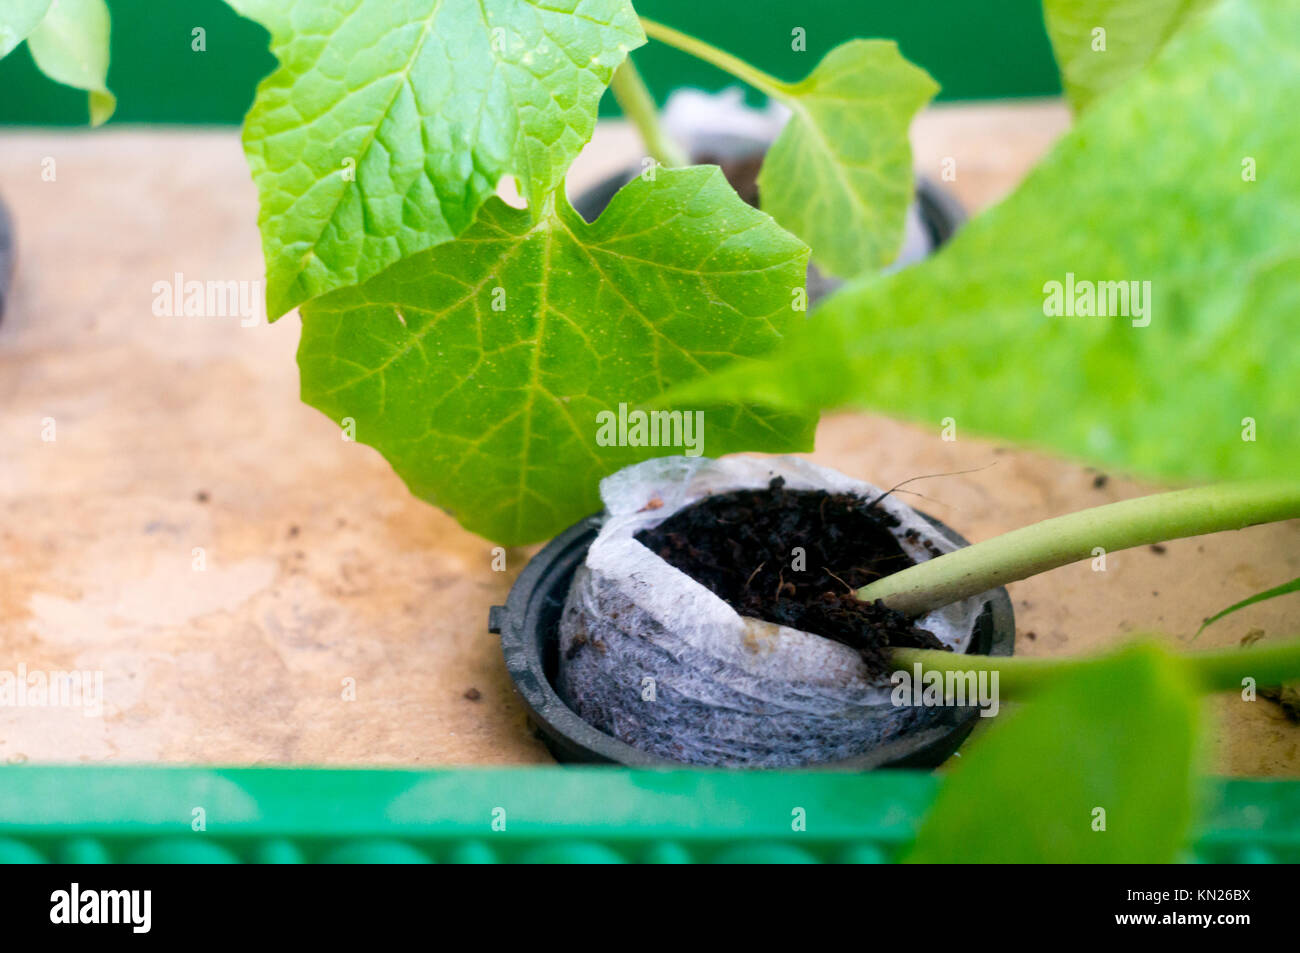 Hydroponic plant growing in coco coir net pot Stock Photo